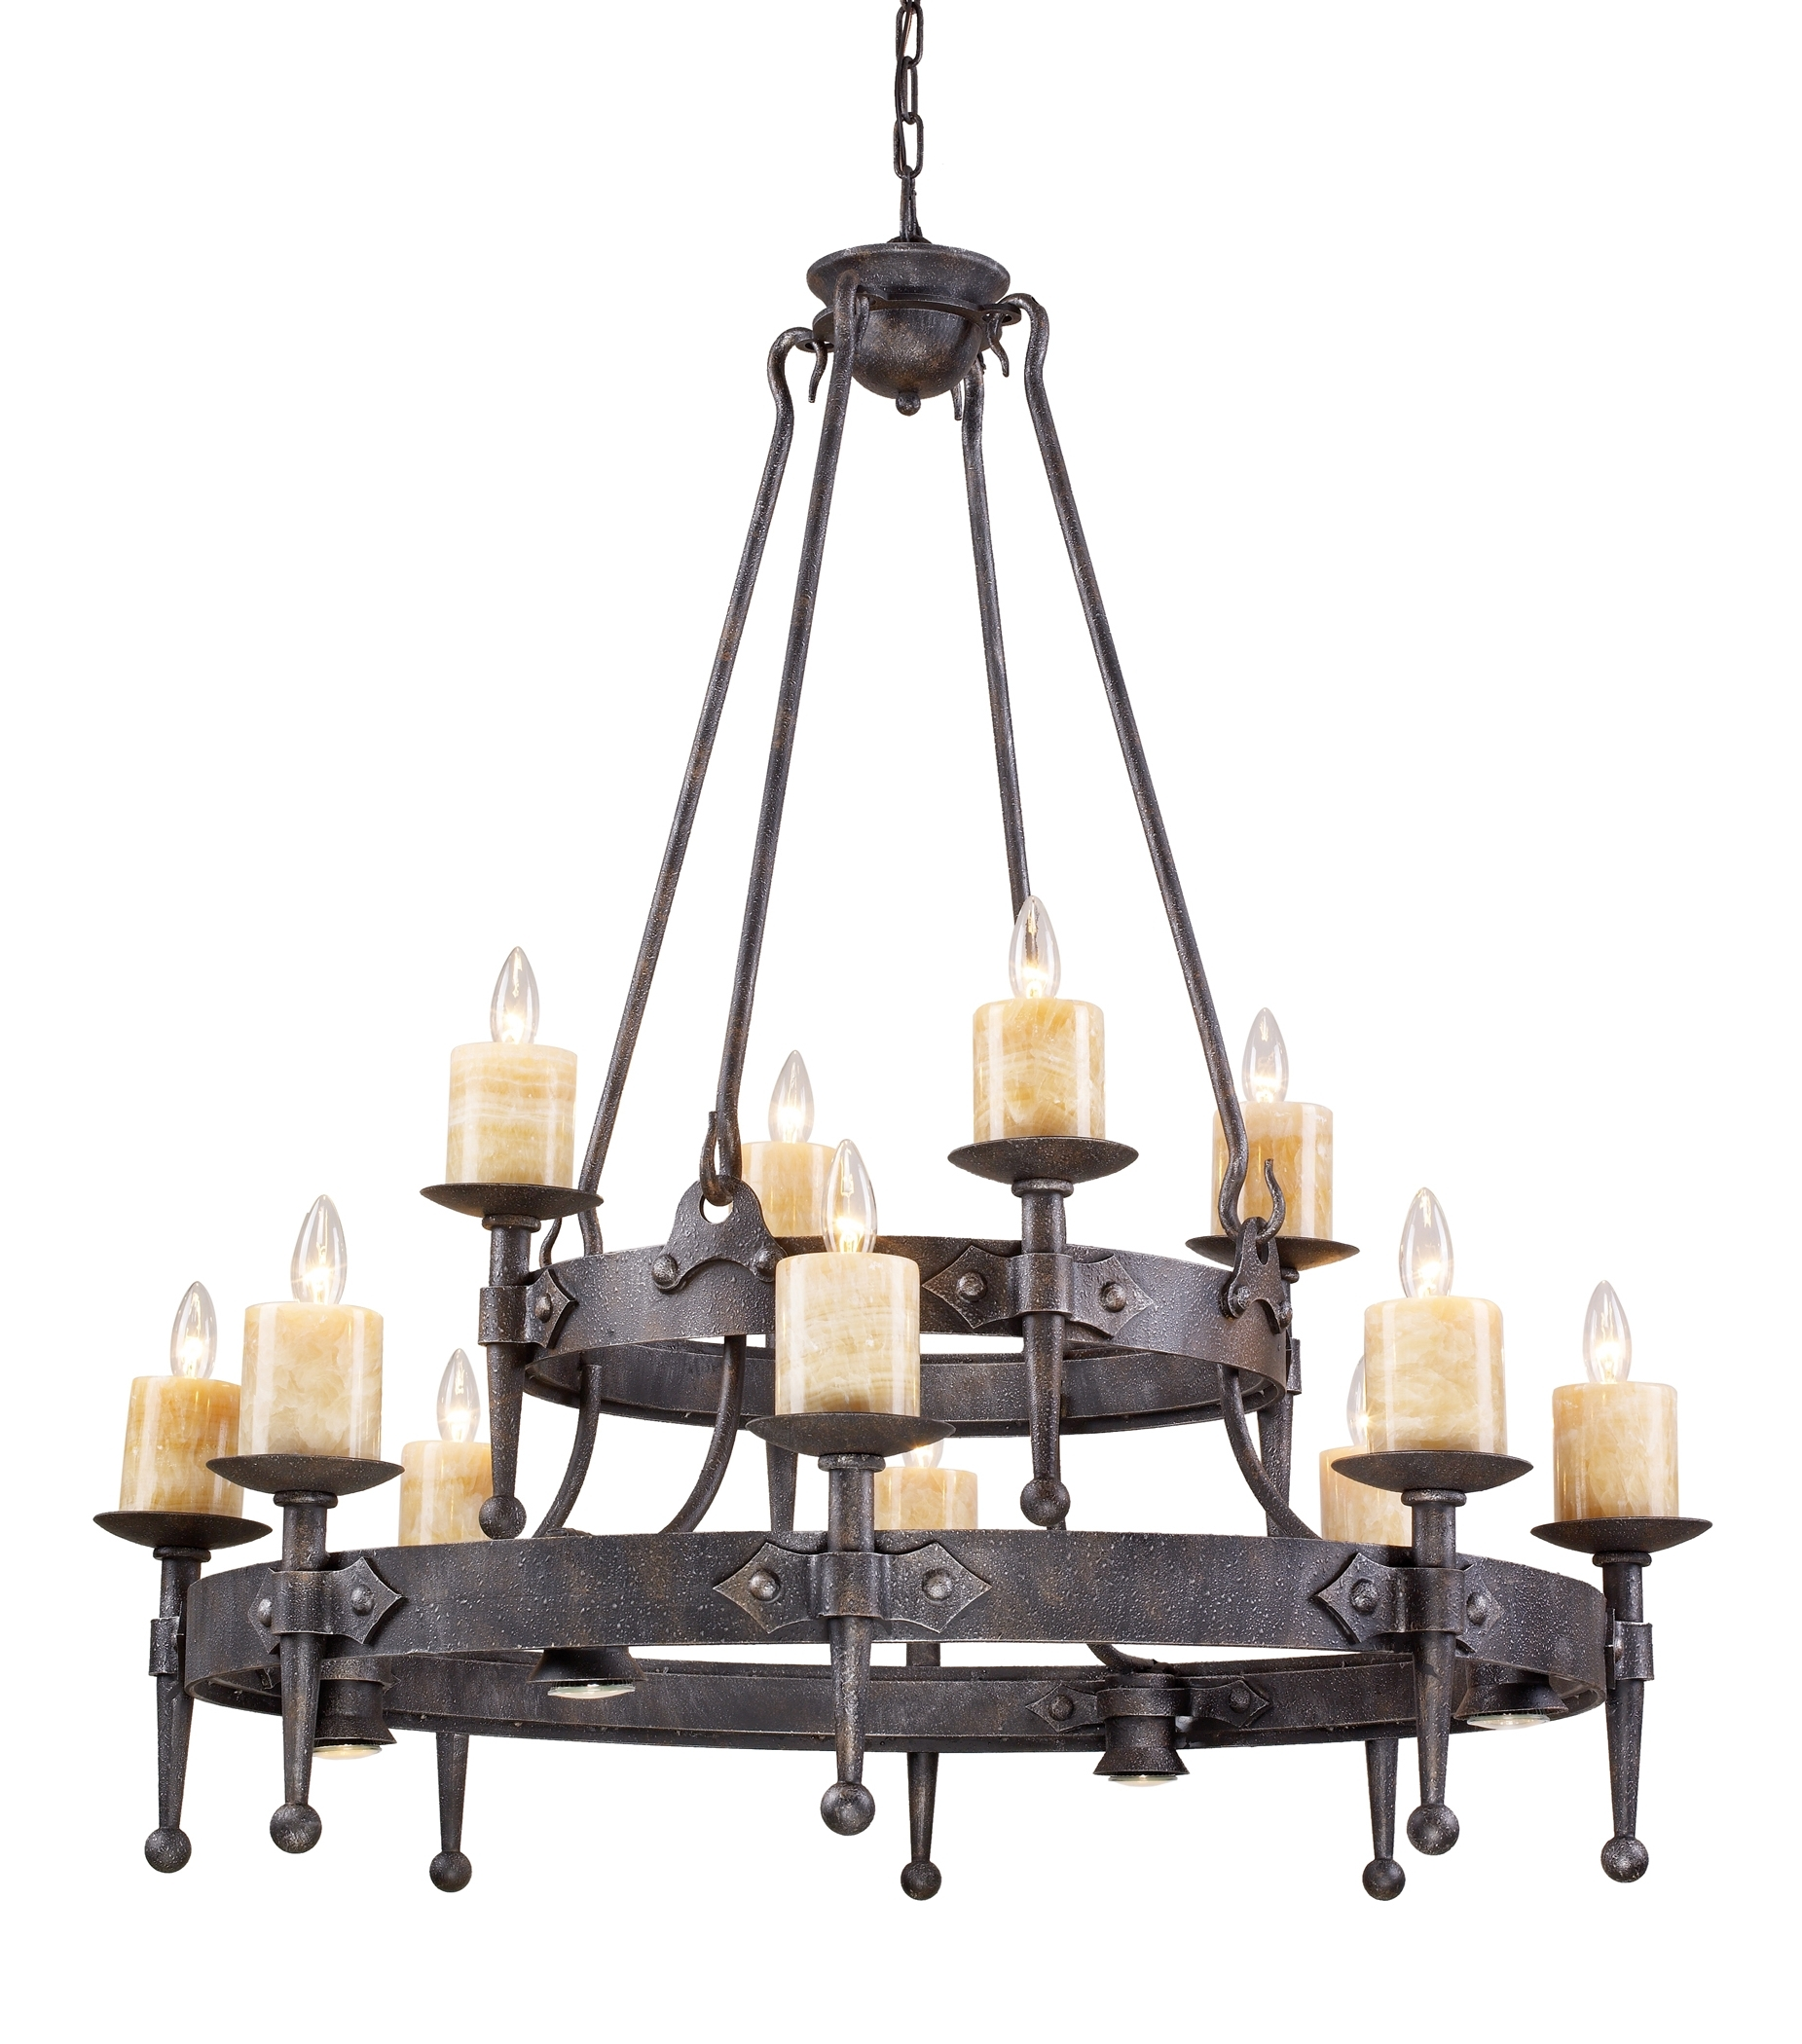 Contemporary Rustic Wrought Iron Chandelier Throughout Wooden With Regard To Latest Modern Wrought Iron Chandeliers (View 9 of 20)